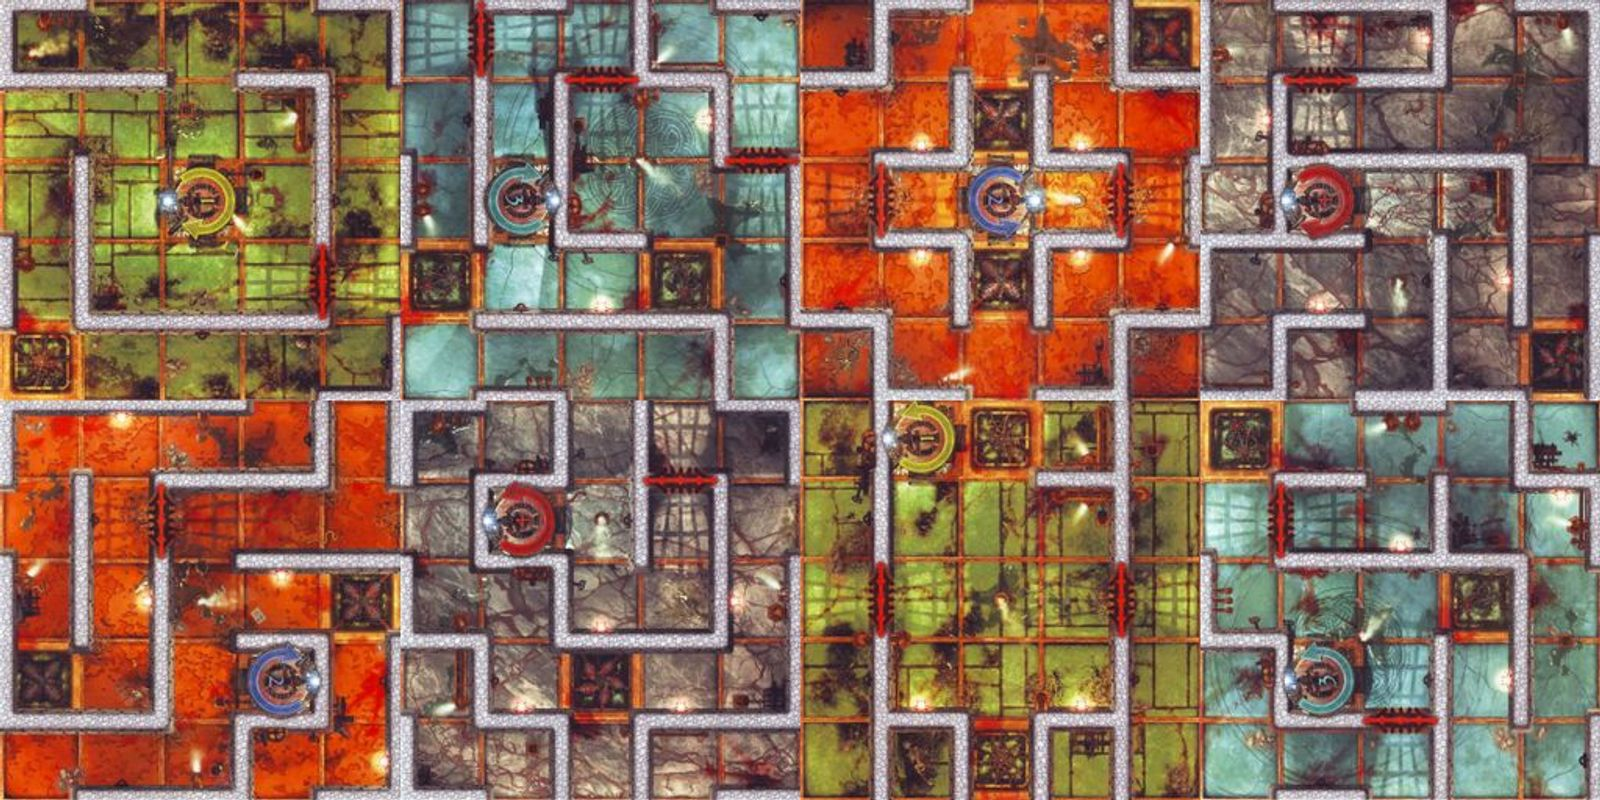 Dungeon Twister tiles